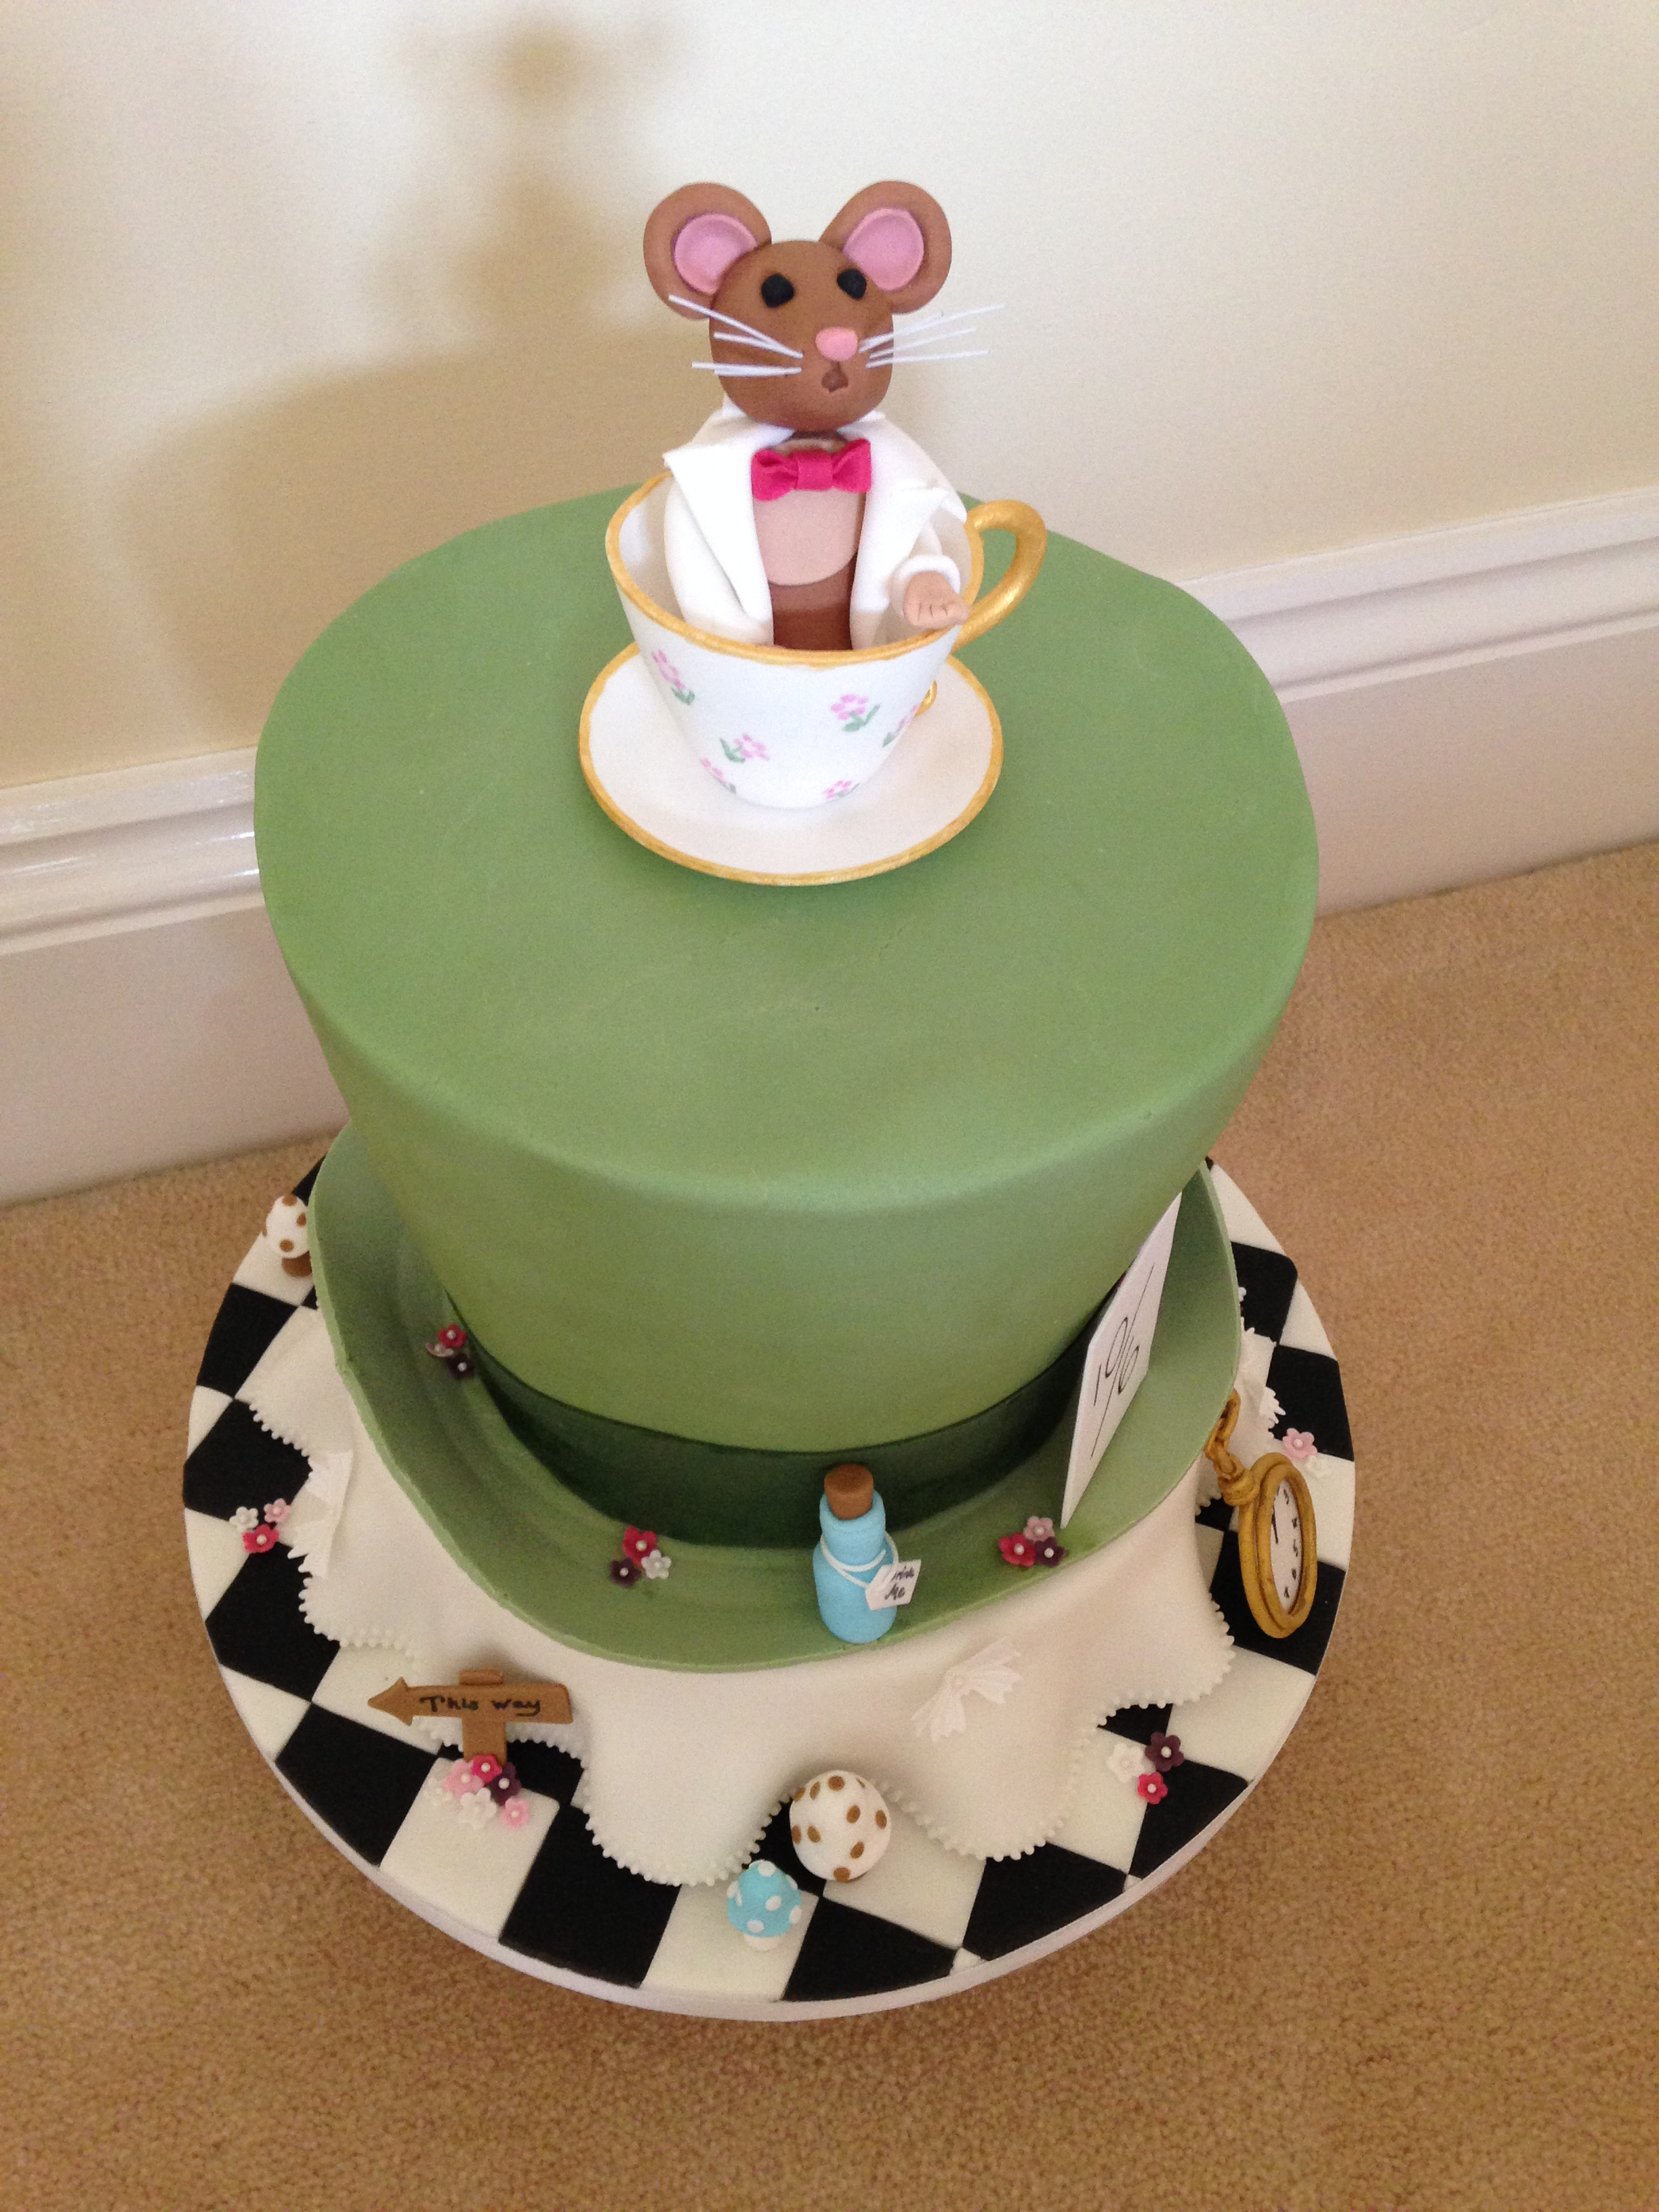 Mad Hatters Tea Party Cake Gloverly Cupcakes